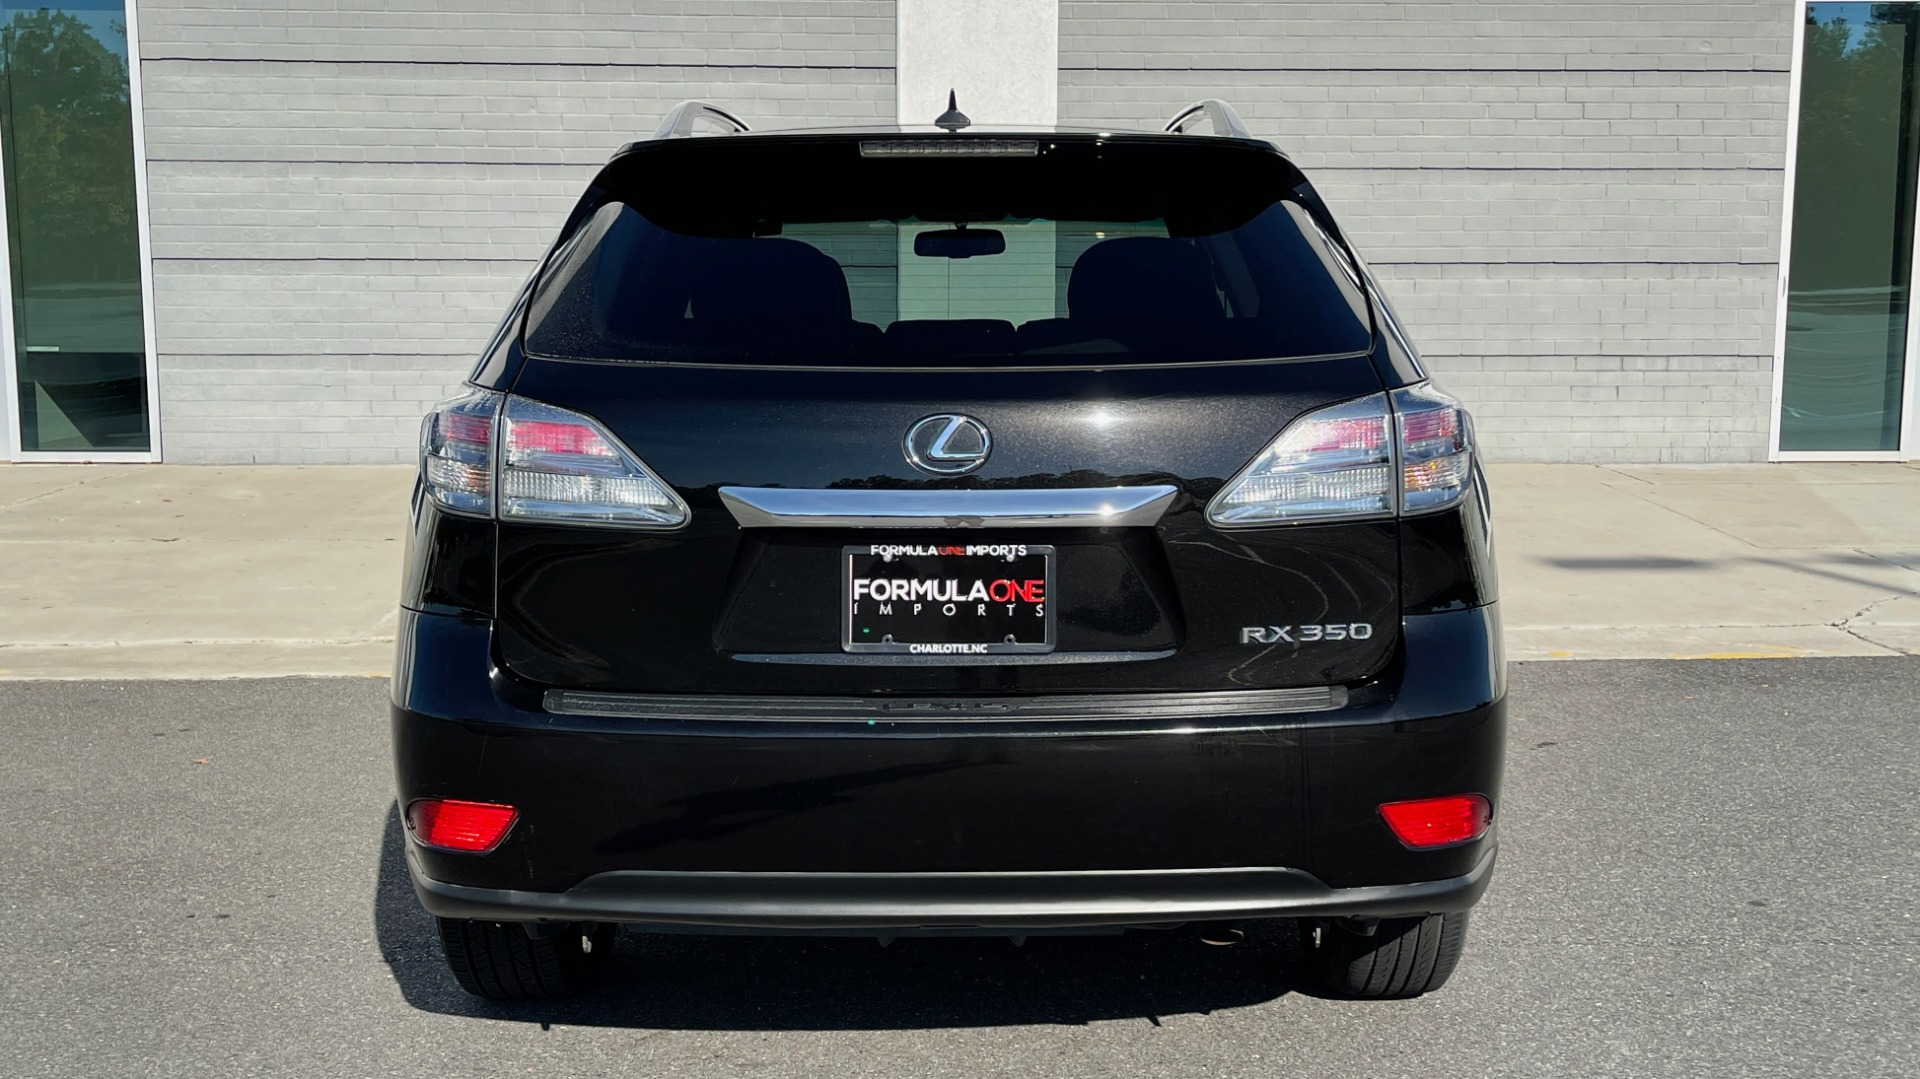 Used 2011 Lexus RX 350 PREMIUM / TOWING PREP PKG / VENTILATED STS / SUNROOF / REARVIEW for sale Sold at Formula Imports in Charlotte NC 28227 15